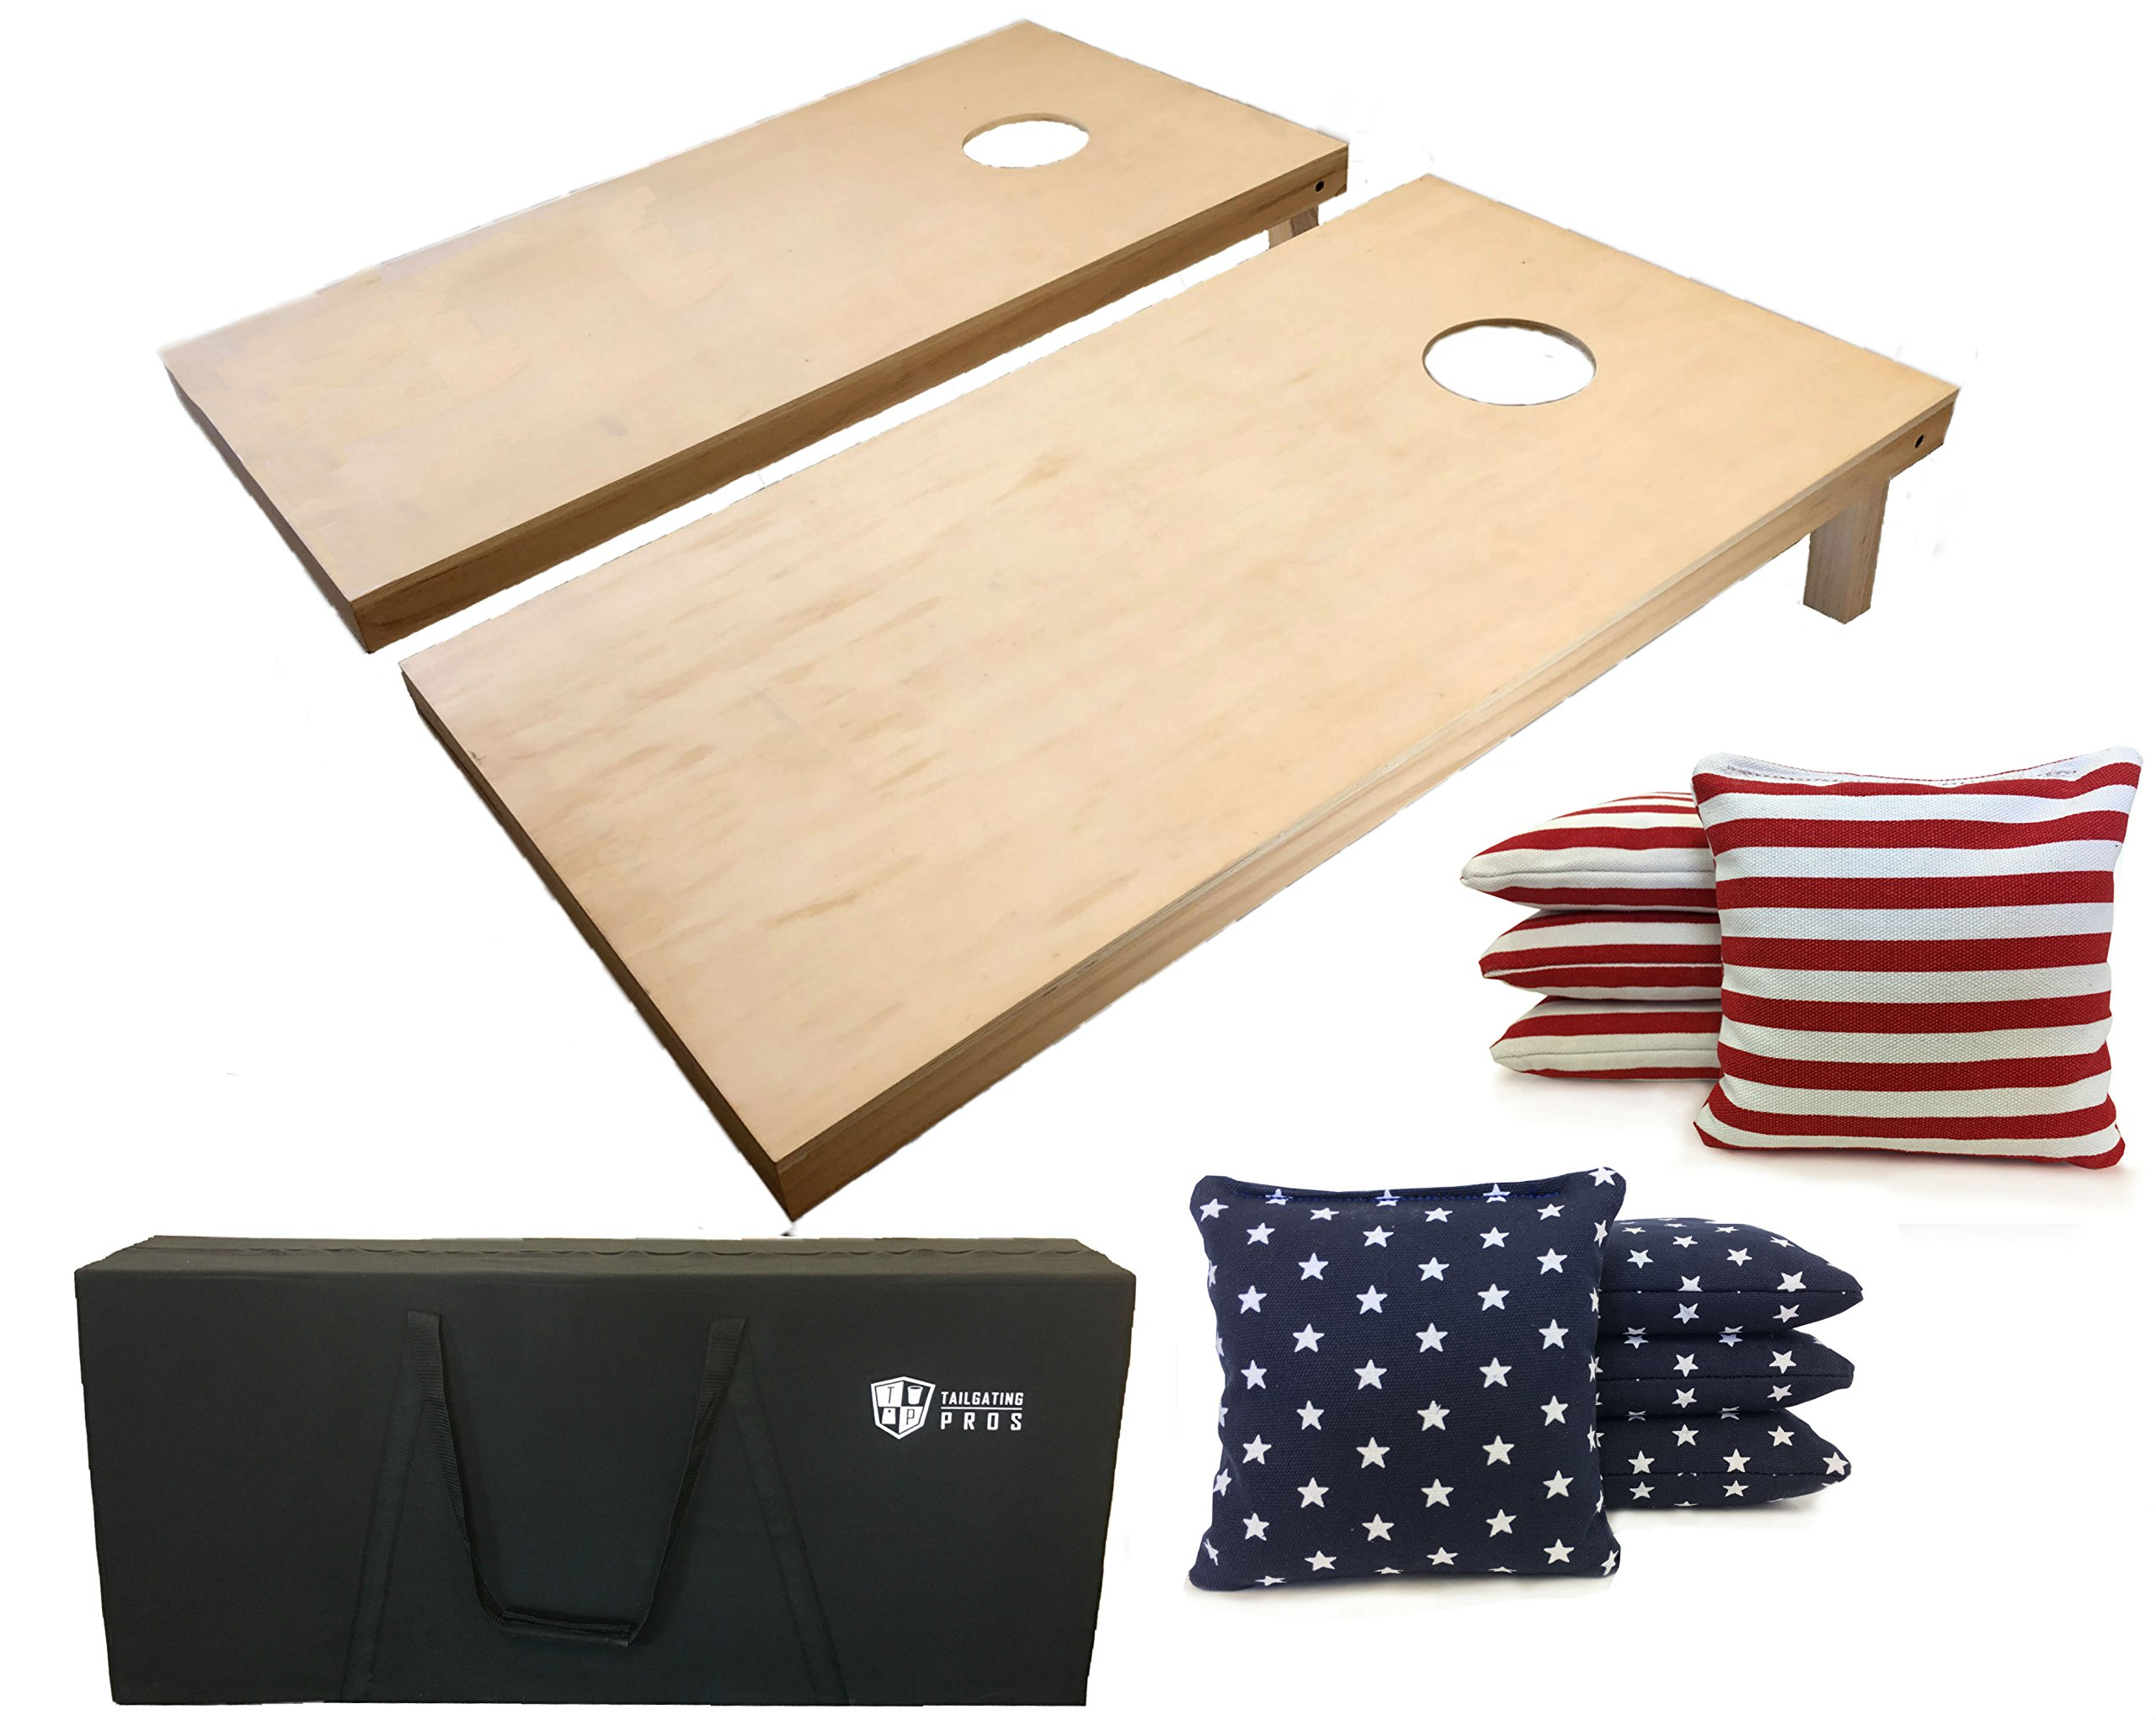 Tailgating Pros 4'x2' Cornhole Boards W/ Stars & Stripes Flag Bags and Carrying Case by Tailgating Pros